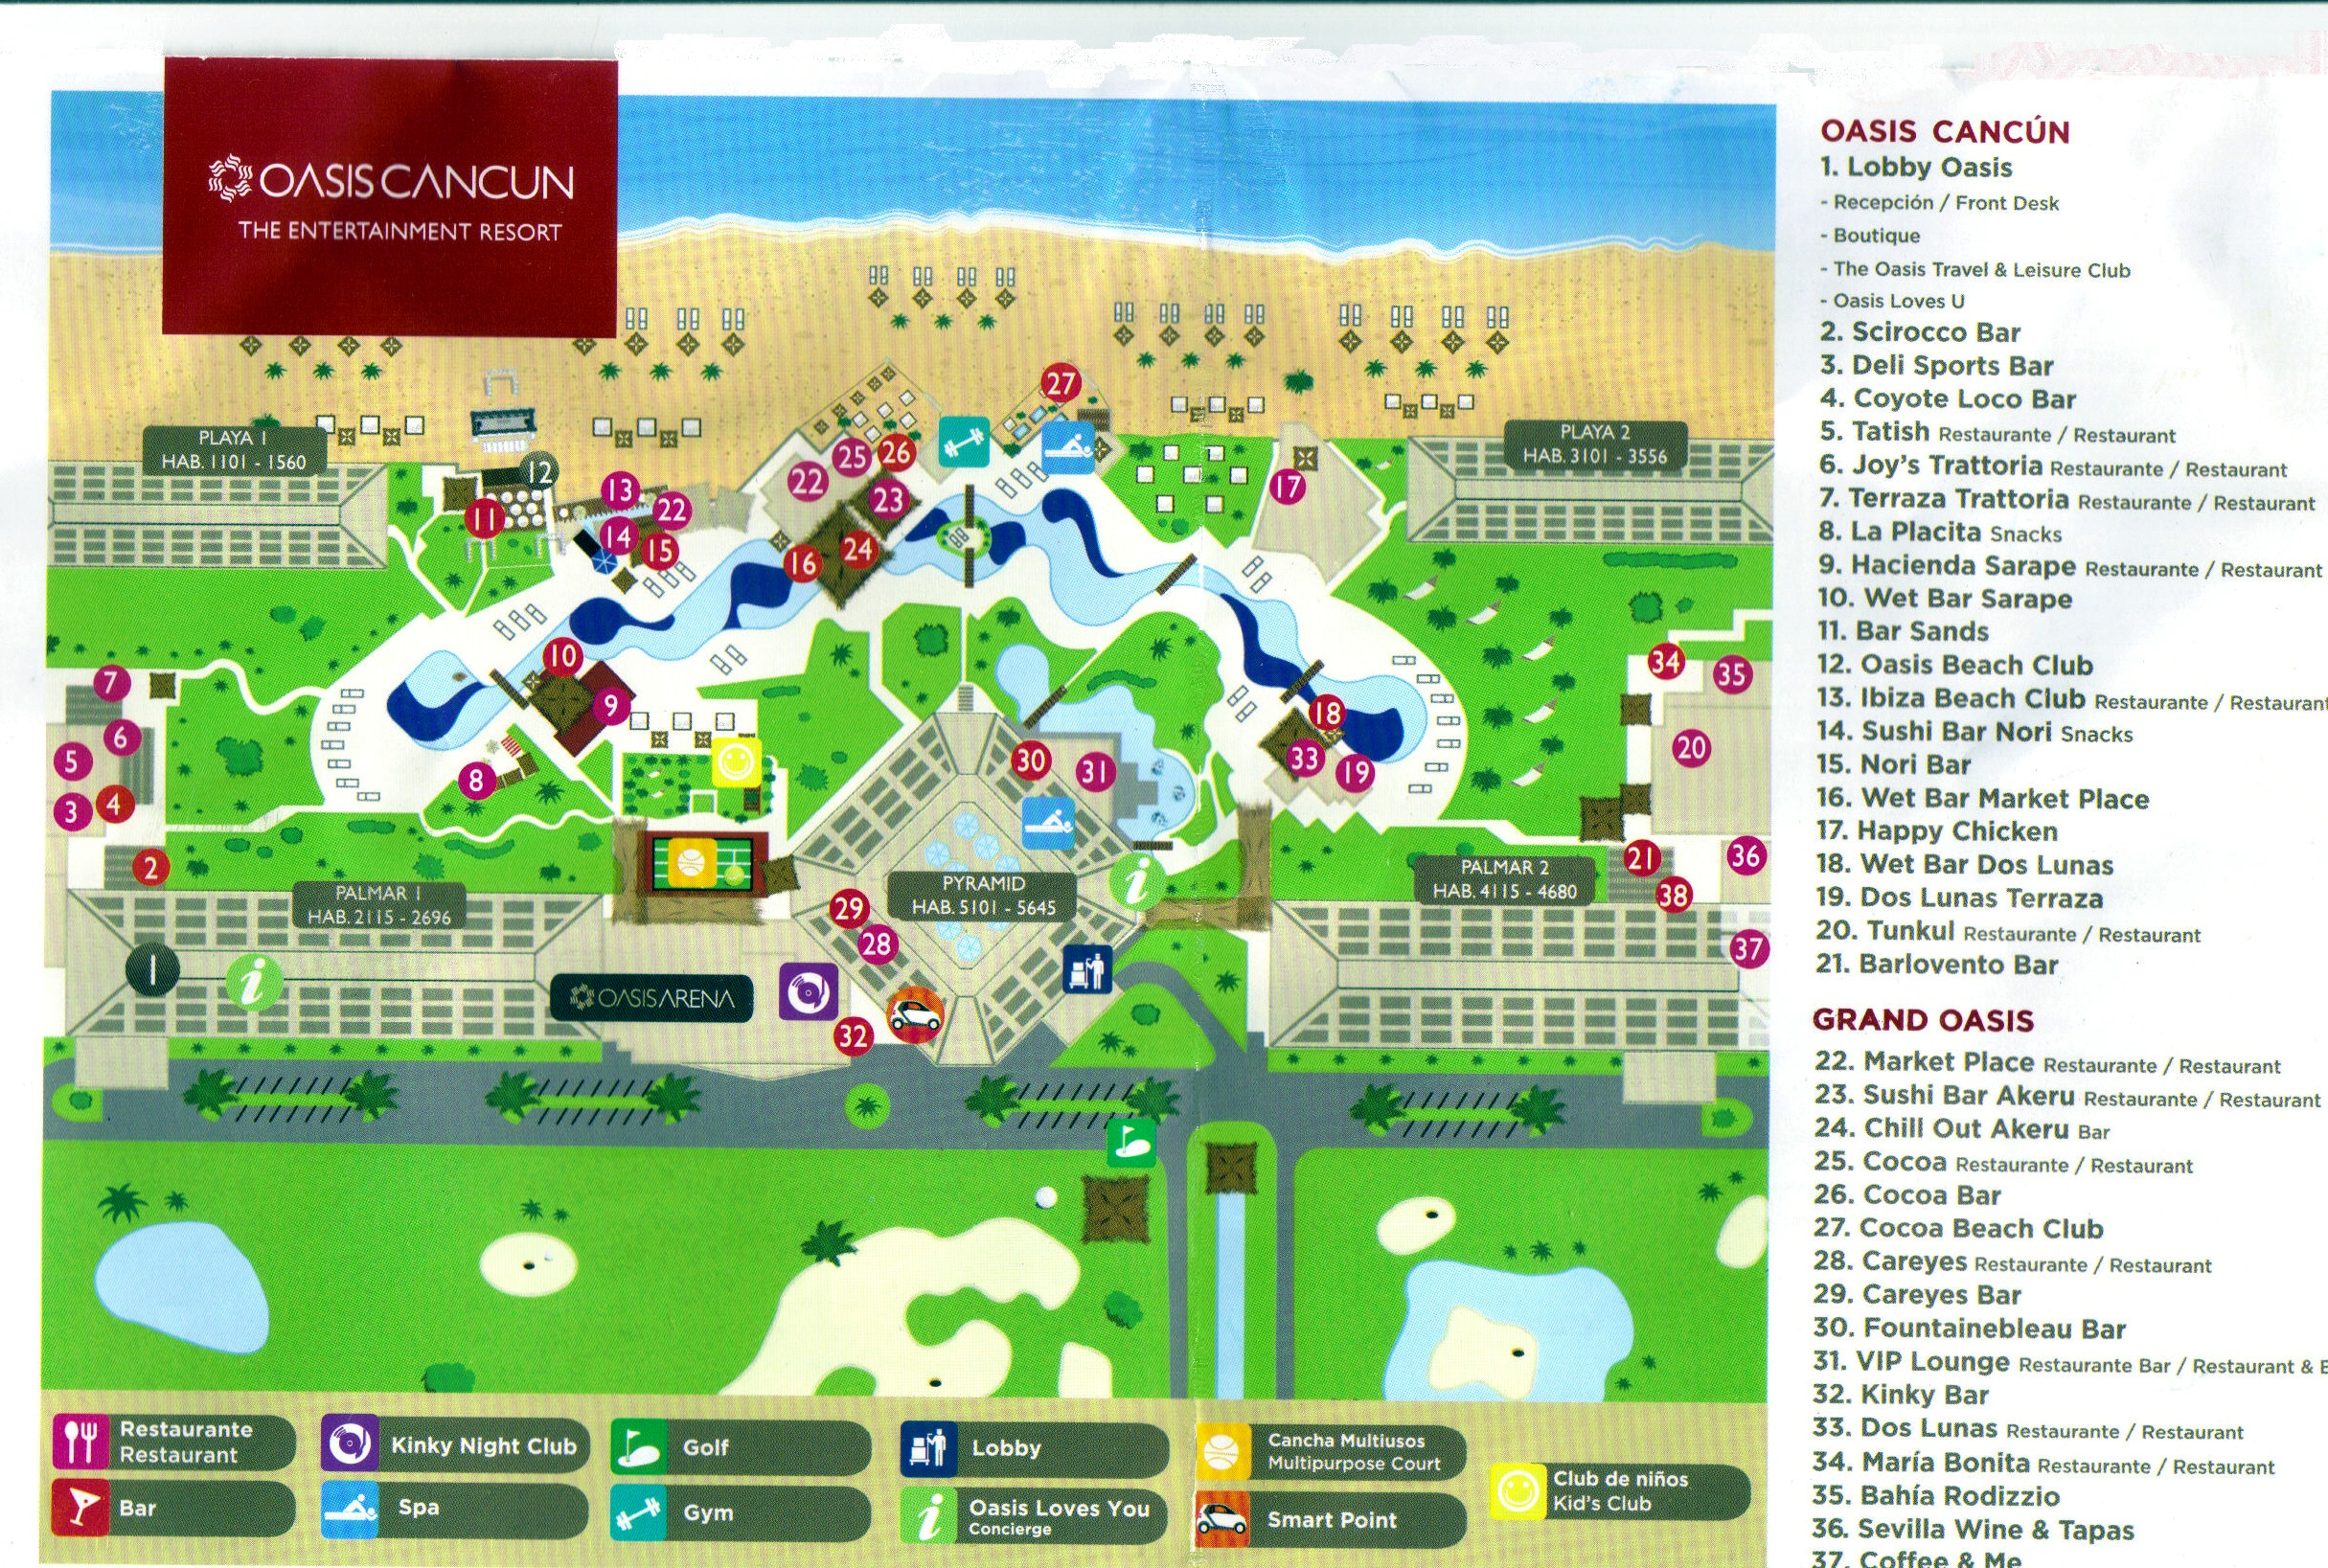 grand oasis cancun resort map 20 Inspirational Punta Cana Princess Resort grand oasis cancun resort map